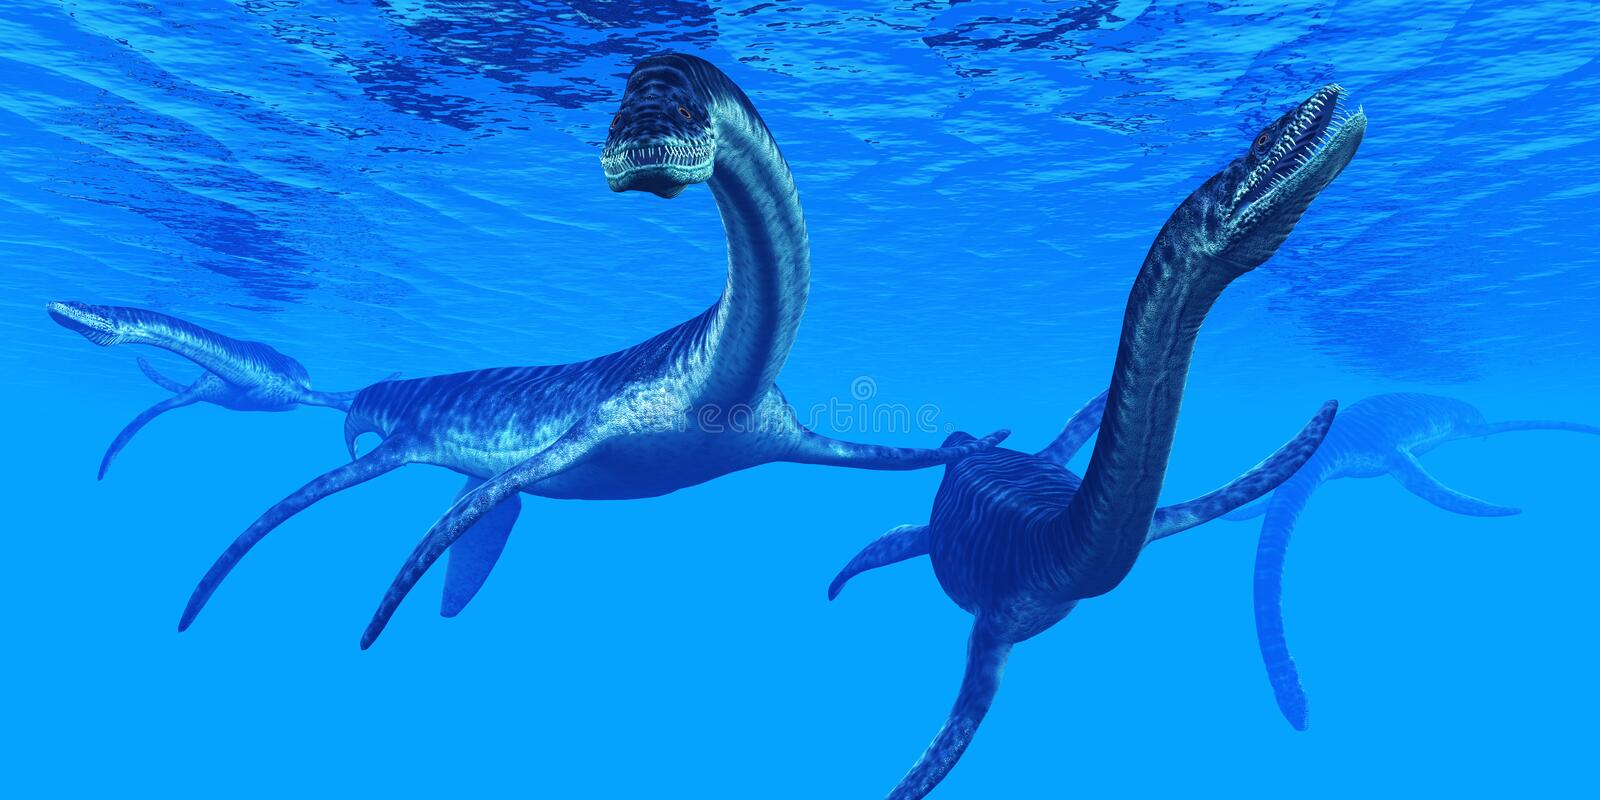 Plesiosaurus Marine Reptiles stock illustrationer